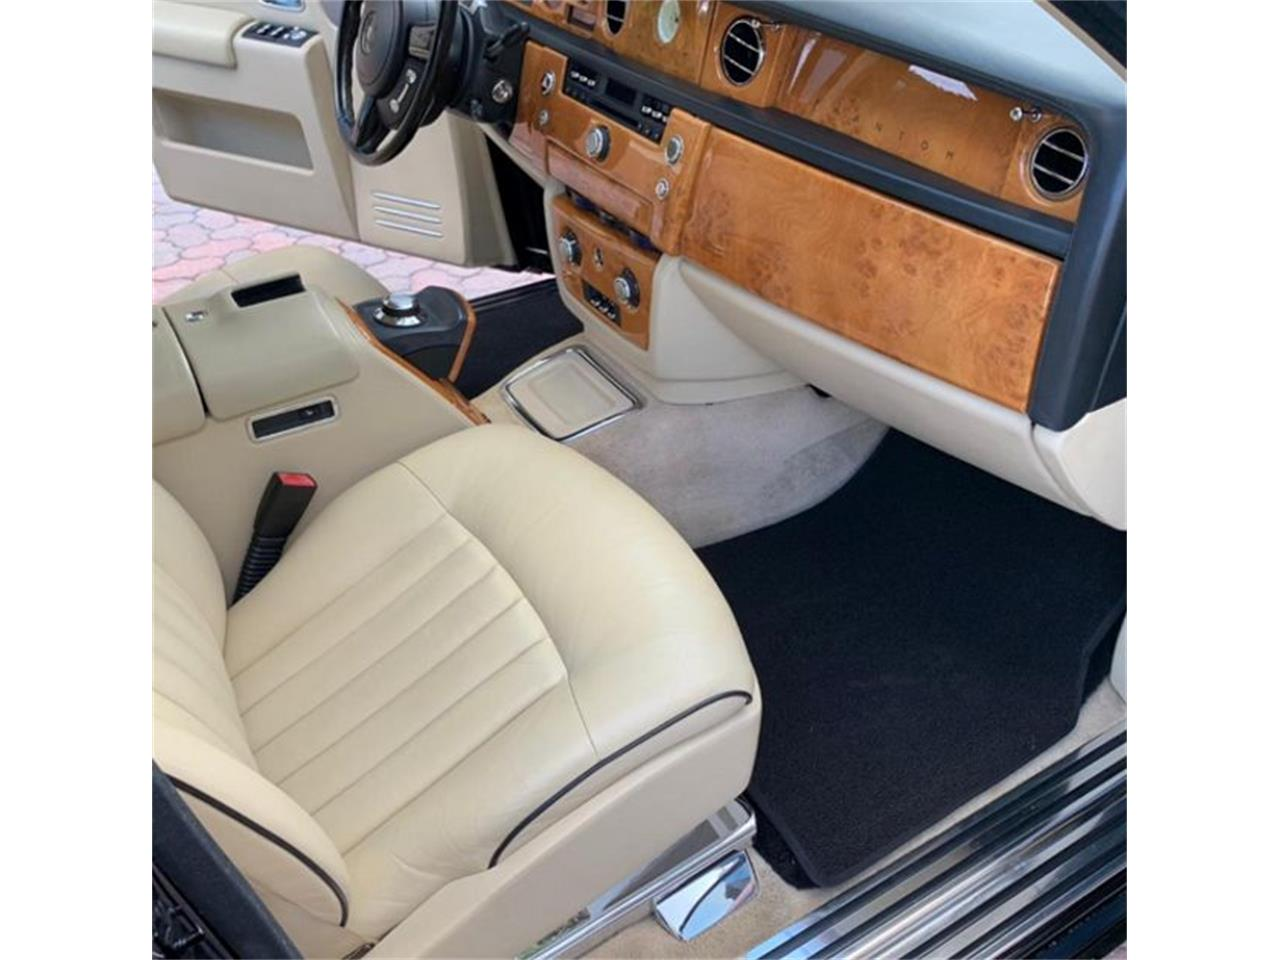 2006 Rolls-Royce Phantom for sale in Valley Park, MO – photo 39